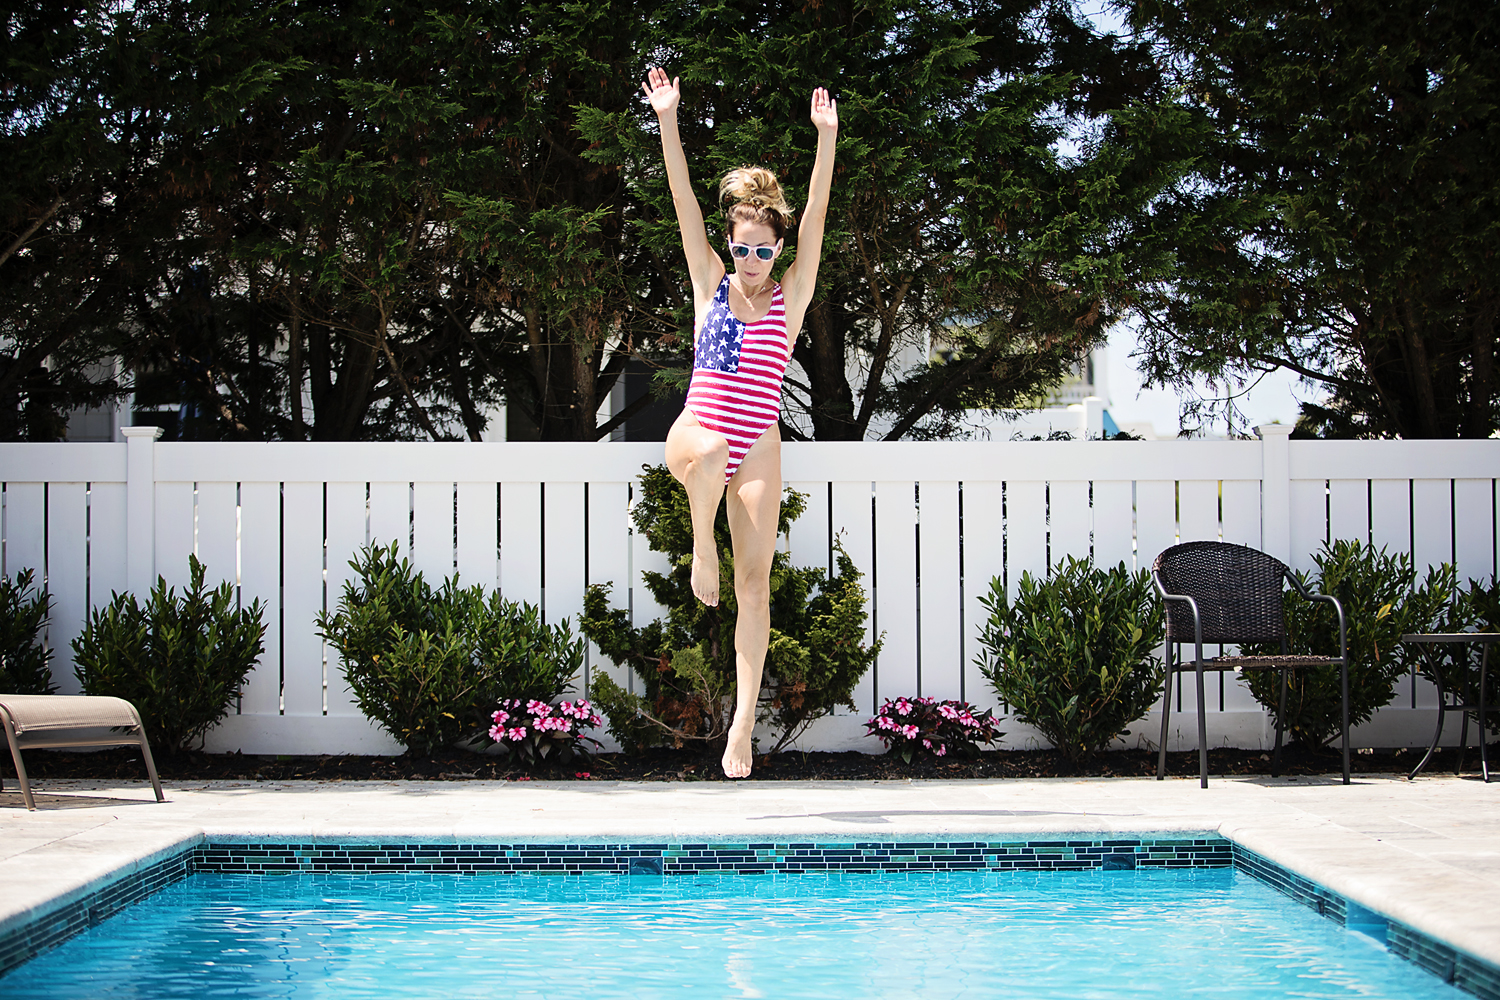 The Motherchic wearing alternative apparel sweatshirt and american flag bathing suit